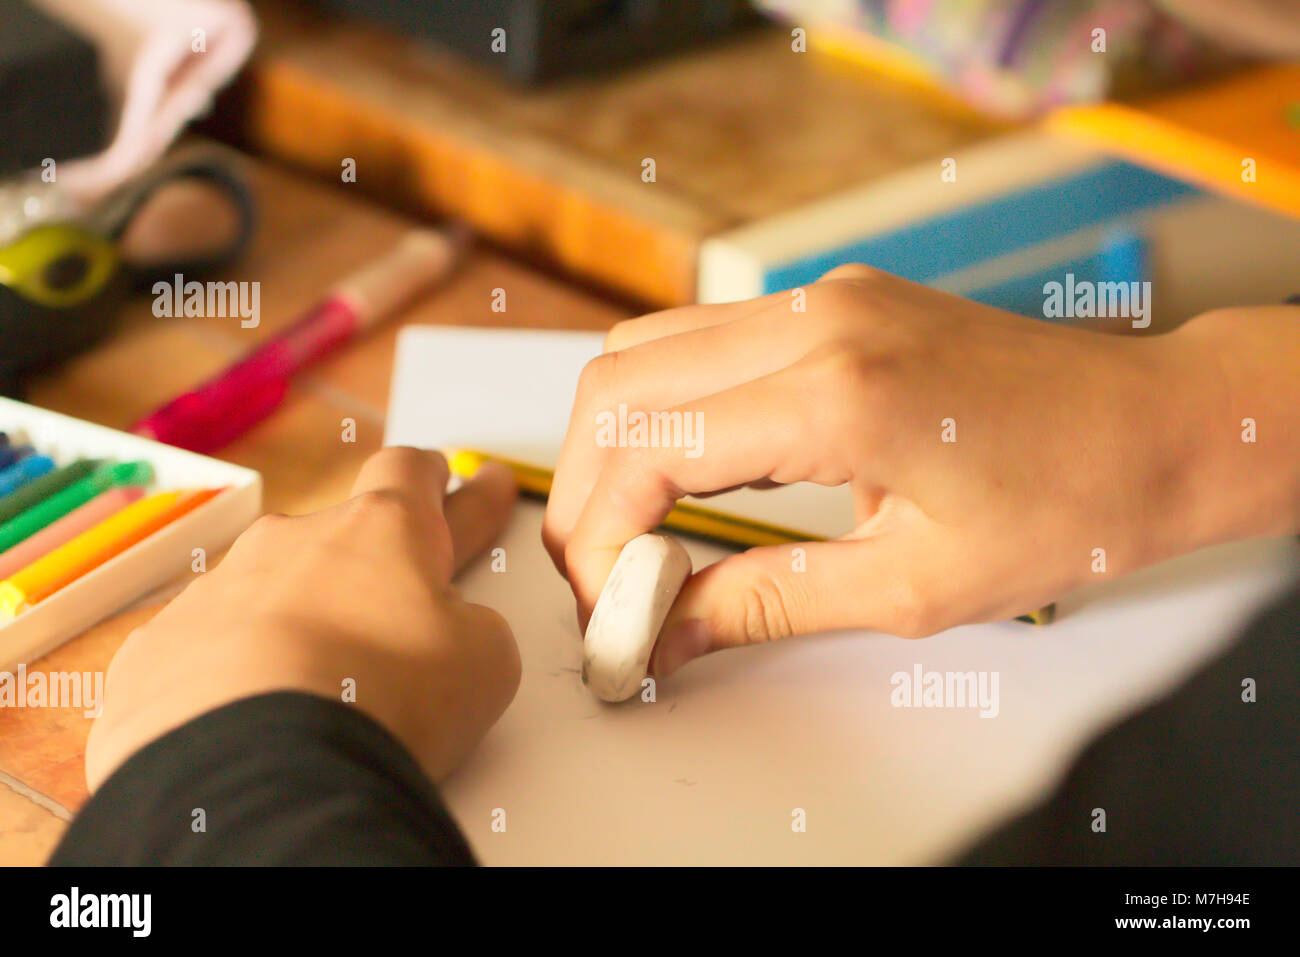 Teenager´s Hand Holding Rubber and Editing a Drawing - Stock Image